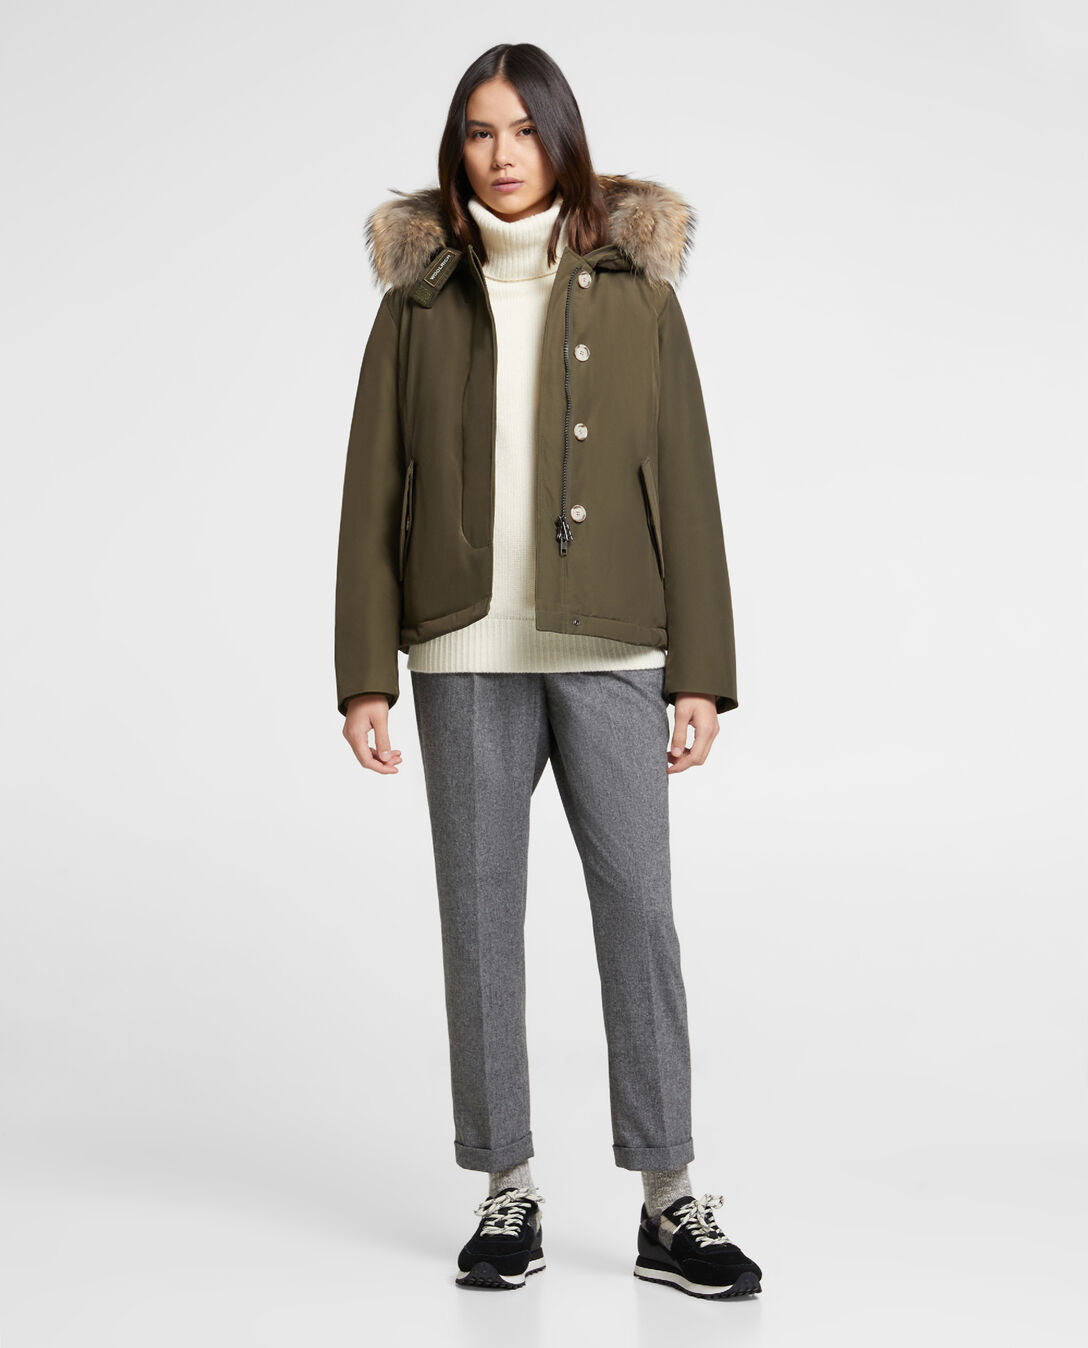 SHOPPING ON LINE WOORLICH W'S SHORT ARCTIC PARKA  FALL WINTER 19/20 NEW COLLECTION WOMEN'S